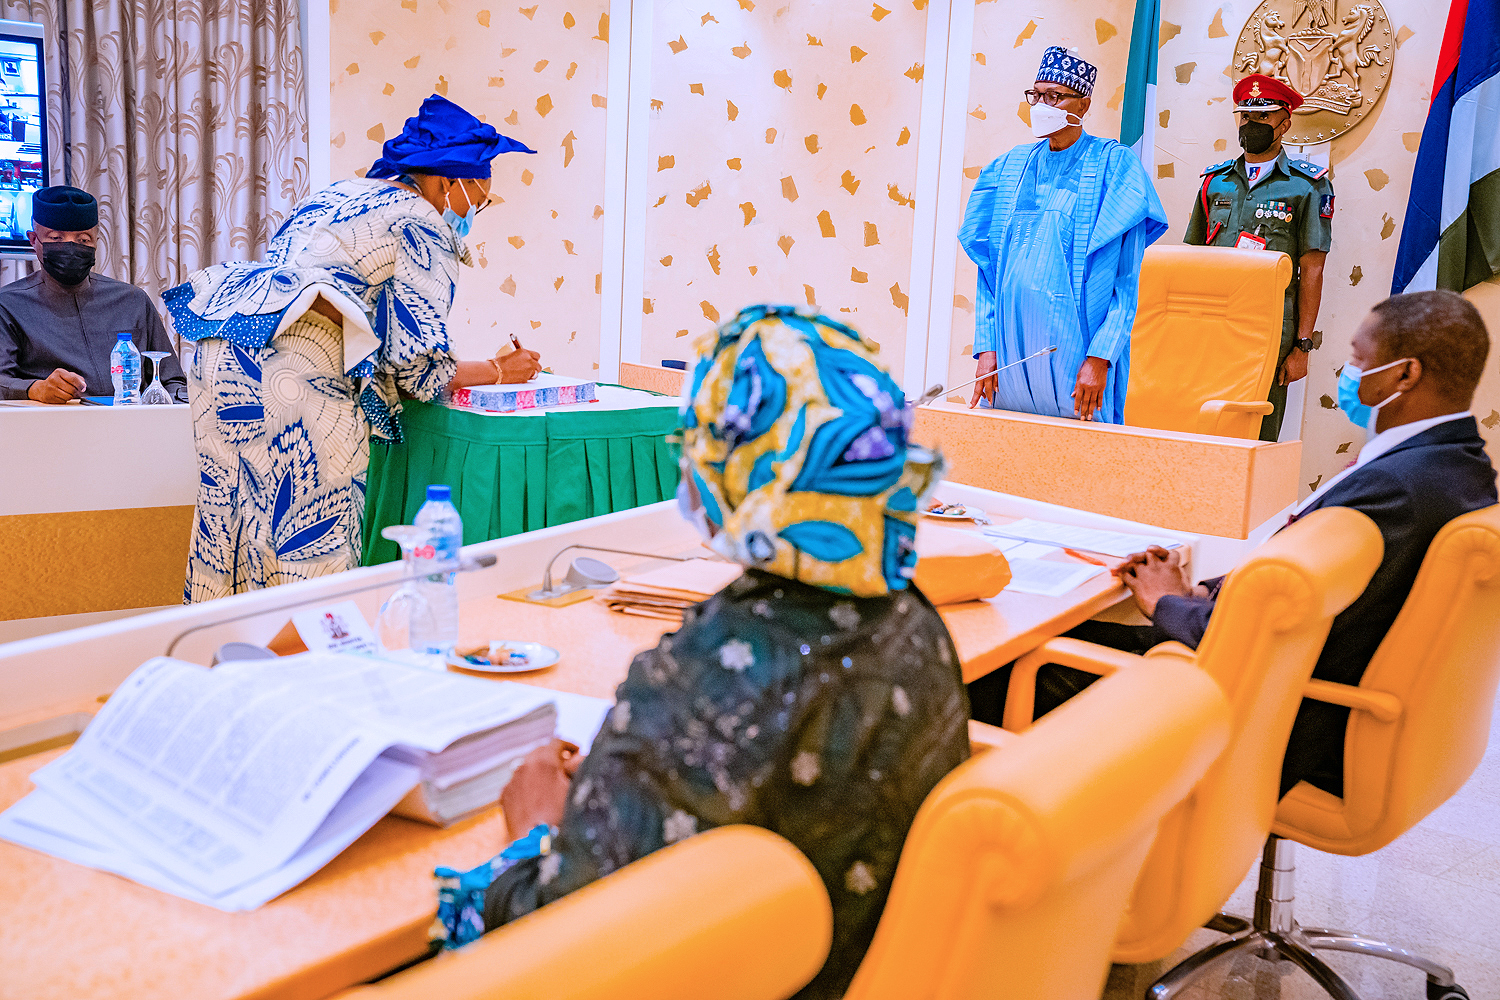 President Buhari Swears In 5 New Permanent Secretaries & Presides Over Virtual Federal Executive Council Meeting On 14/07/2021